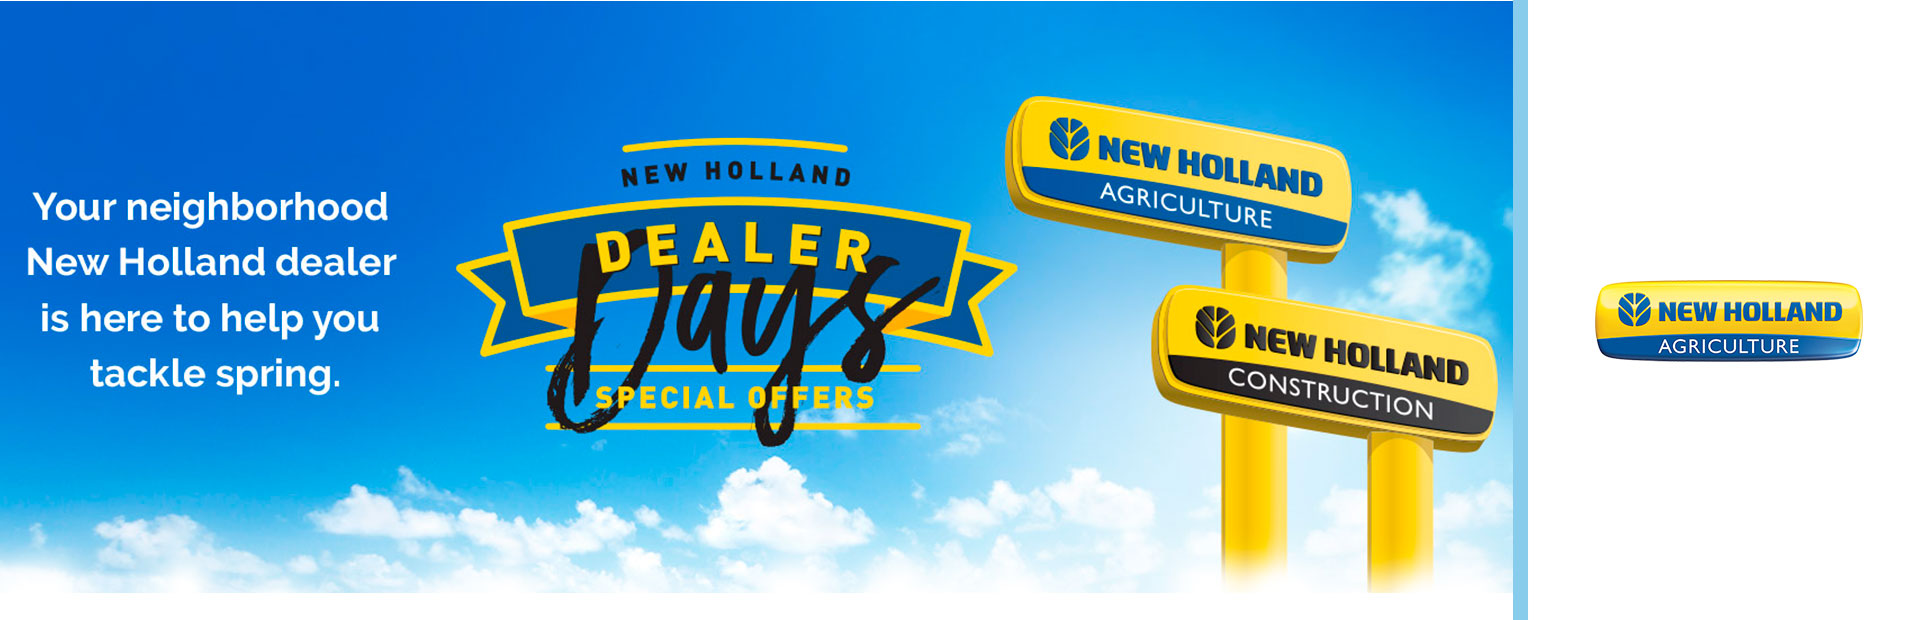 New Holland Construction: New Holland Dealer Days